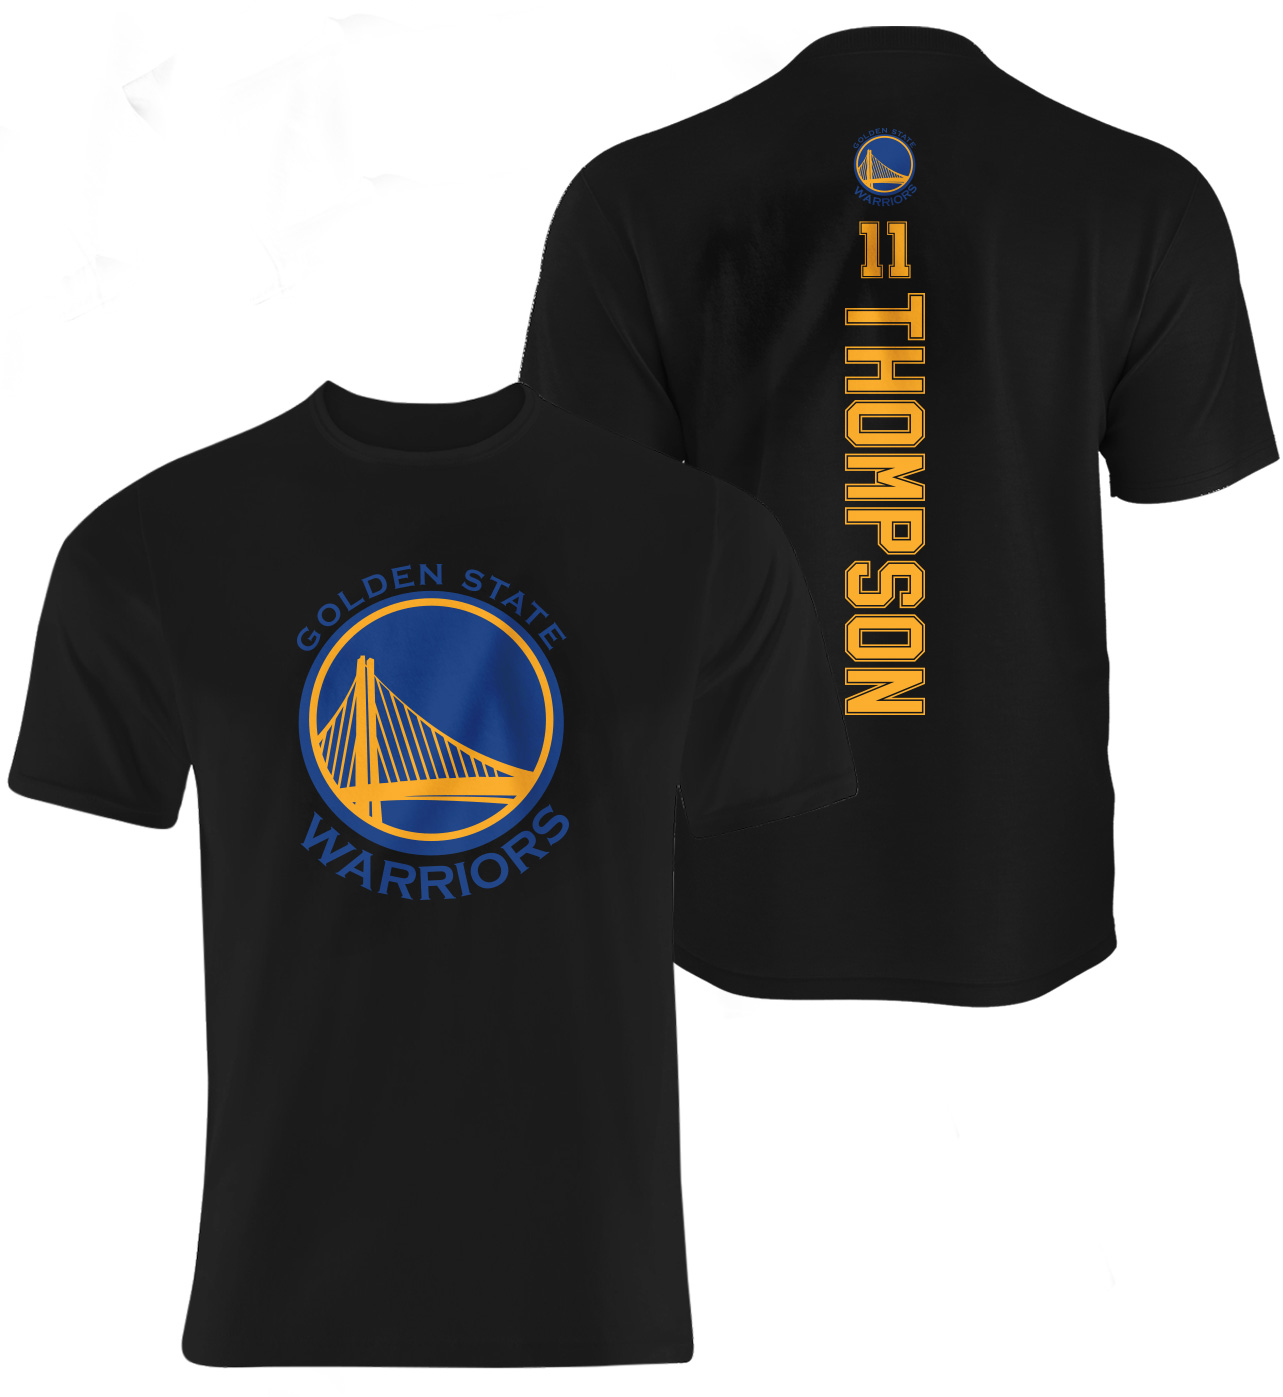 Klay Thompson Vertical Tshirt (TSH-BLC-096-PLYR-GSW-THOMPSON.VER)